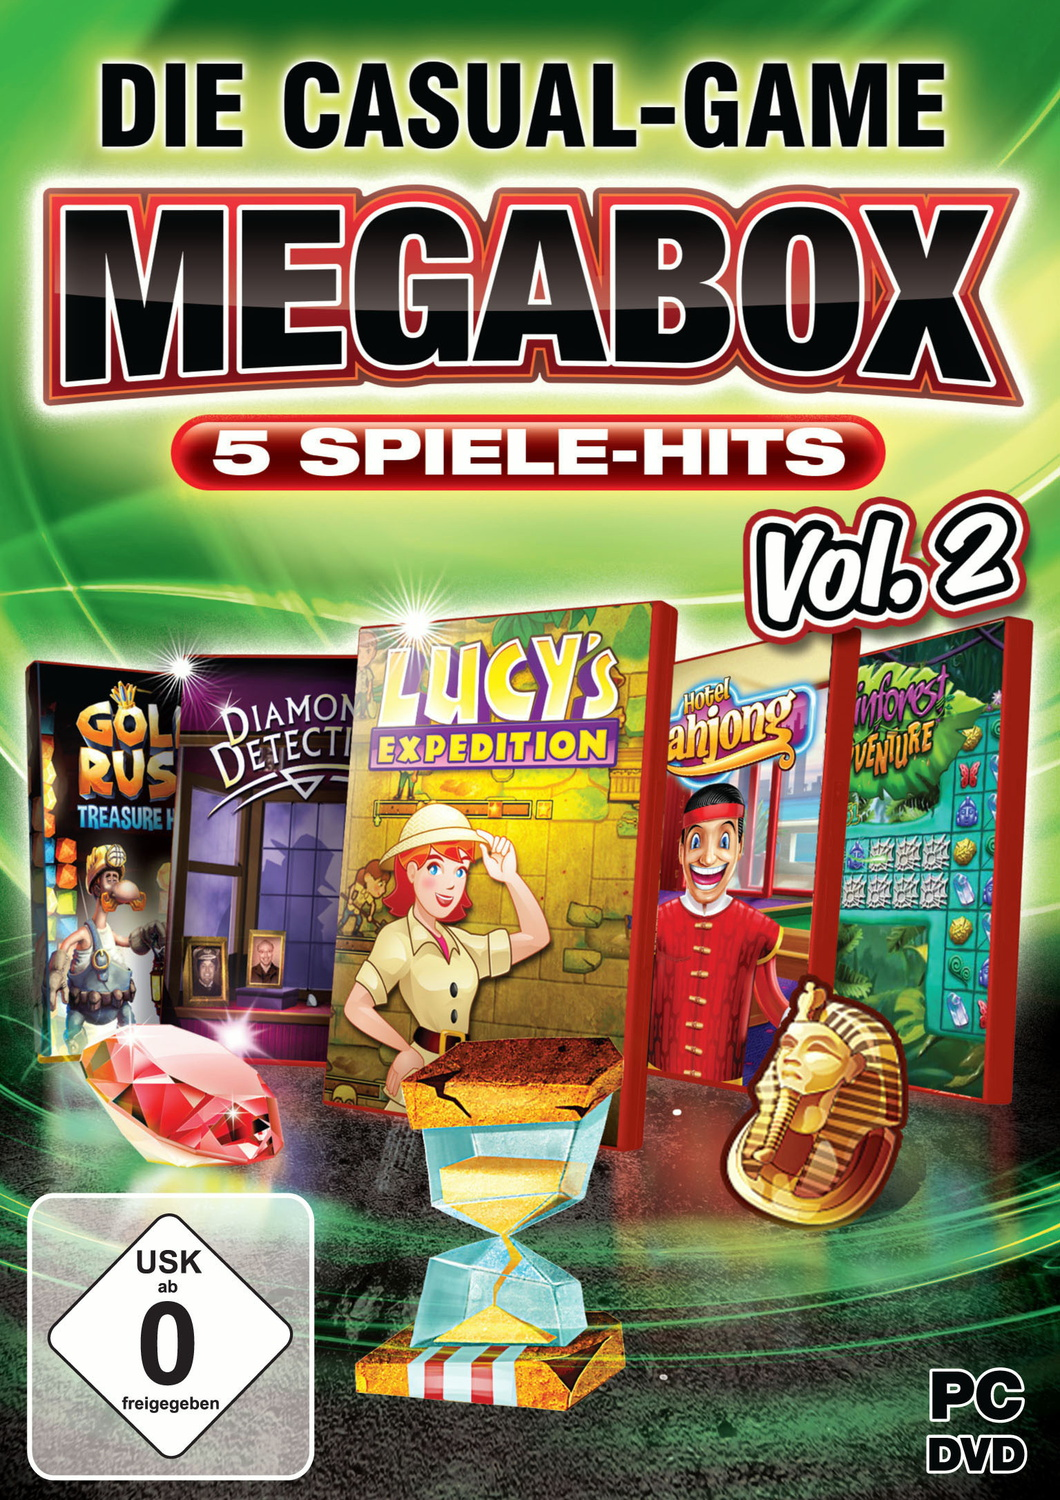 Die Casual-Game MegaBox Vol. 2 (PC)